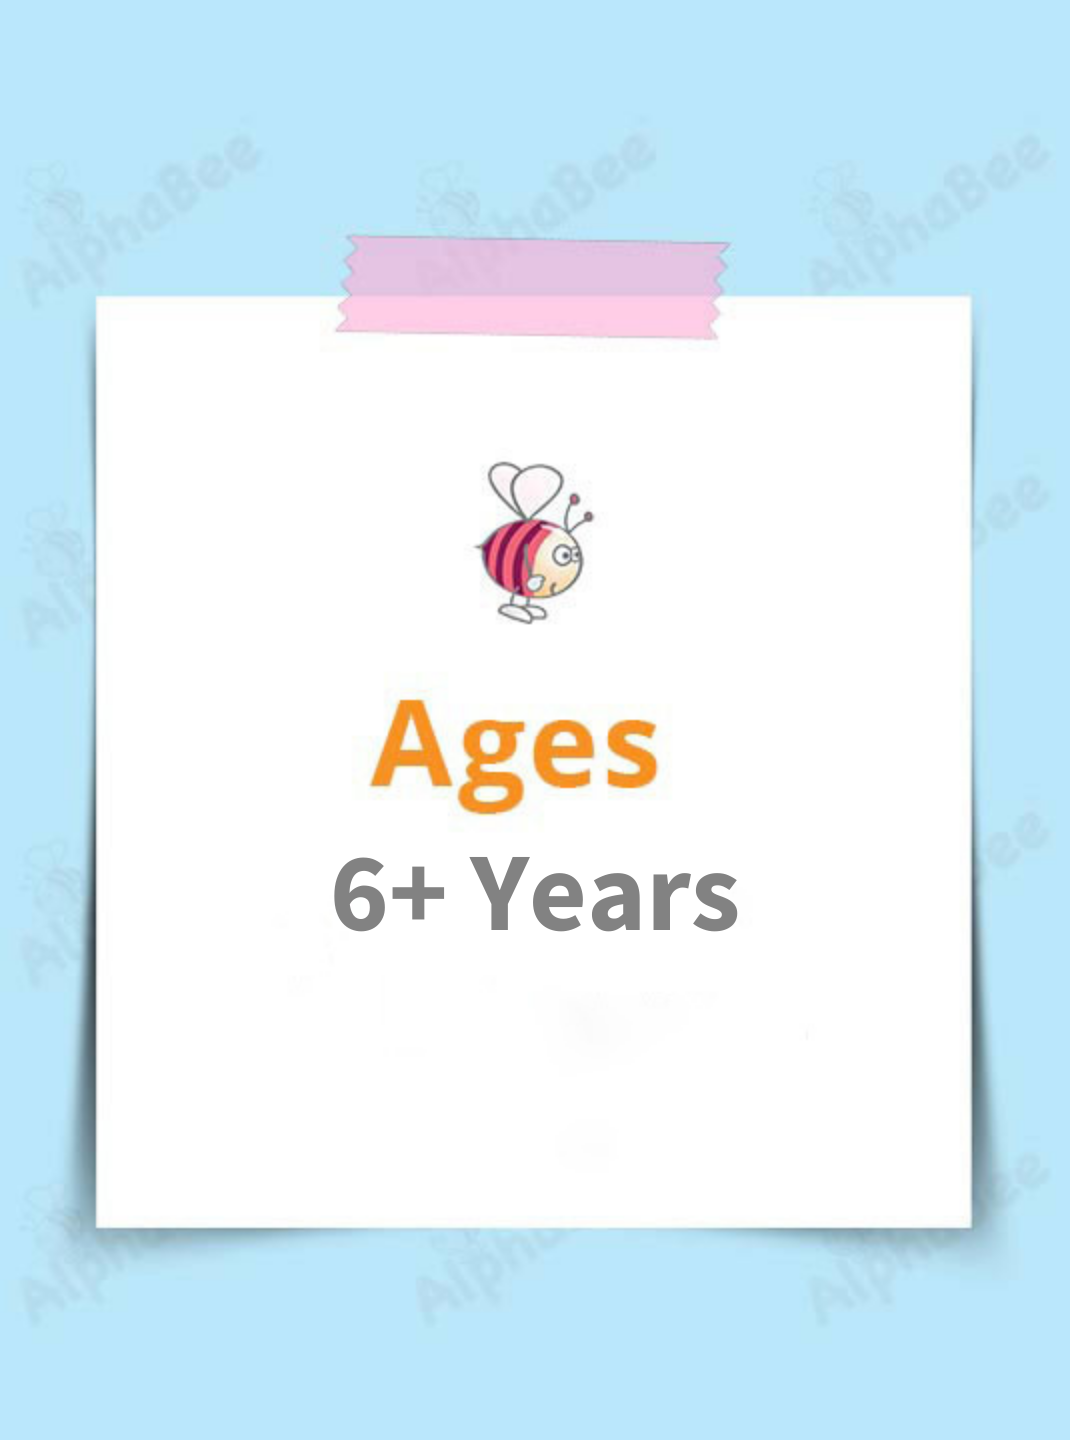 Ages 6+ Years